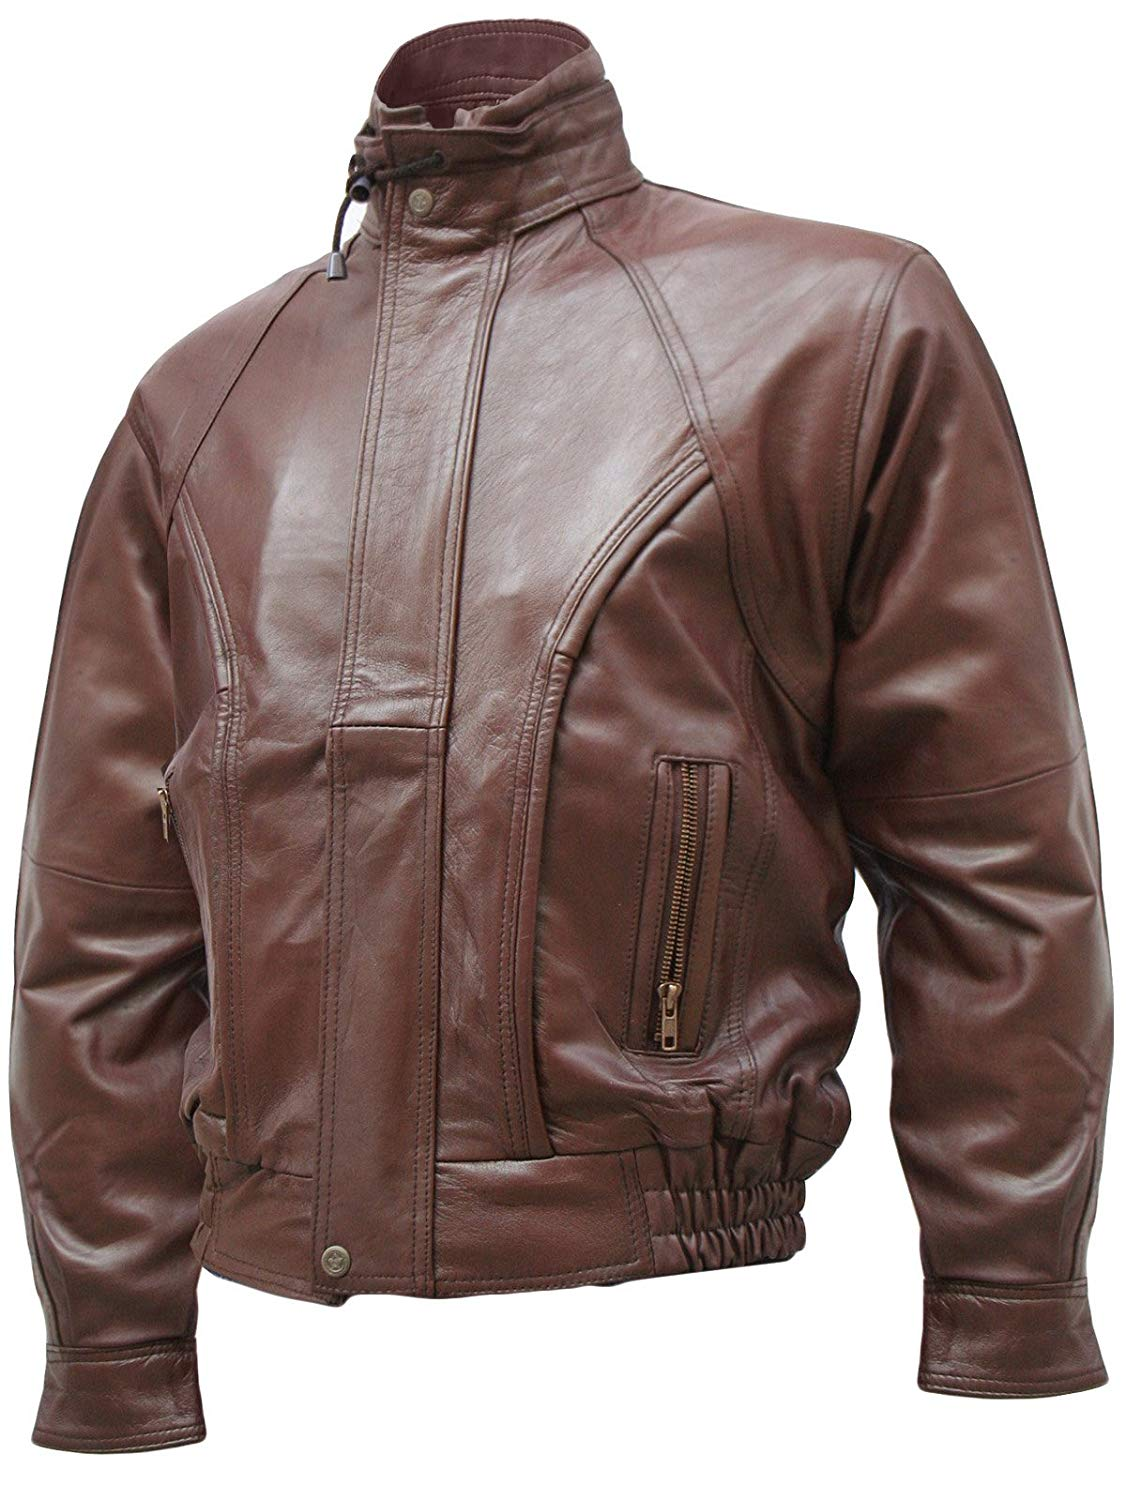 Xport Designs Real Leather Size X-Large Brown Men's Leather Bomber Jacket